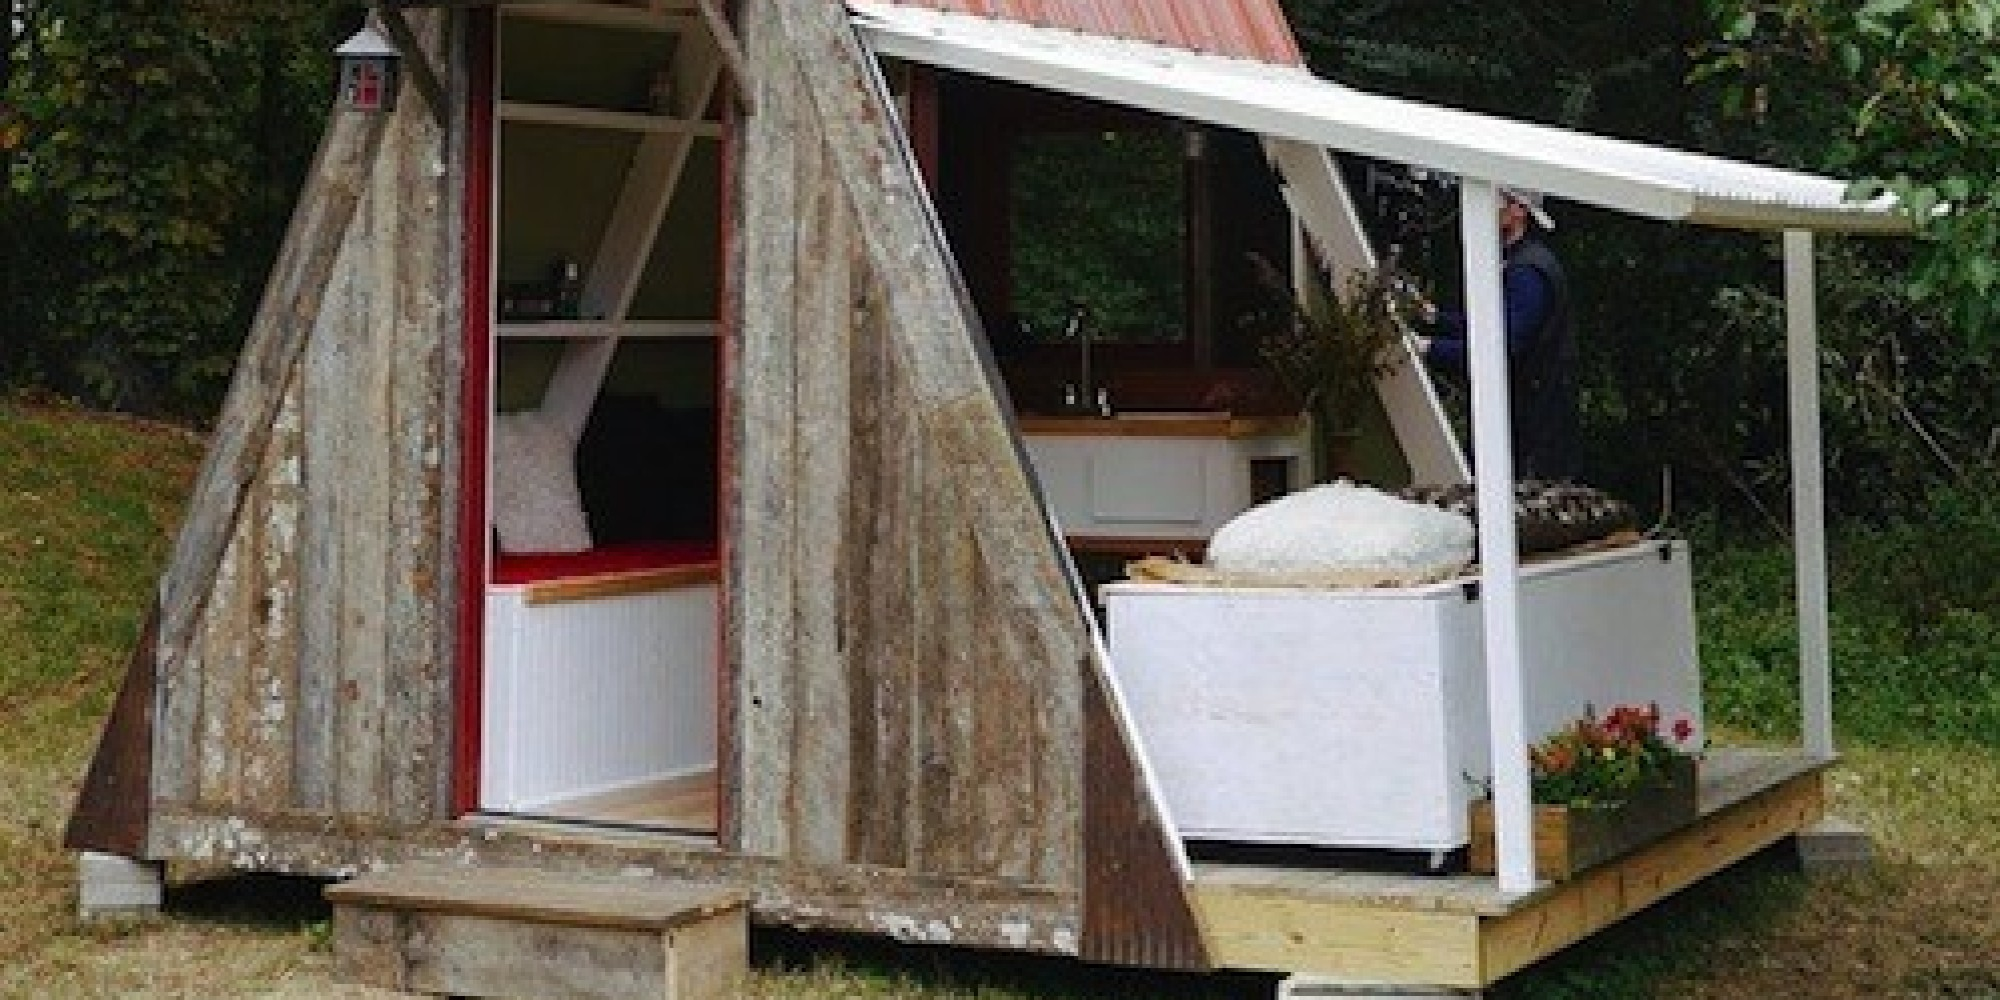 Tiny house costs living tiny nicole 39 s bathhouse home for How much does it cost to build a house yourself